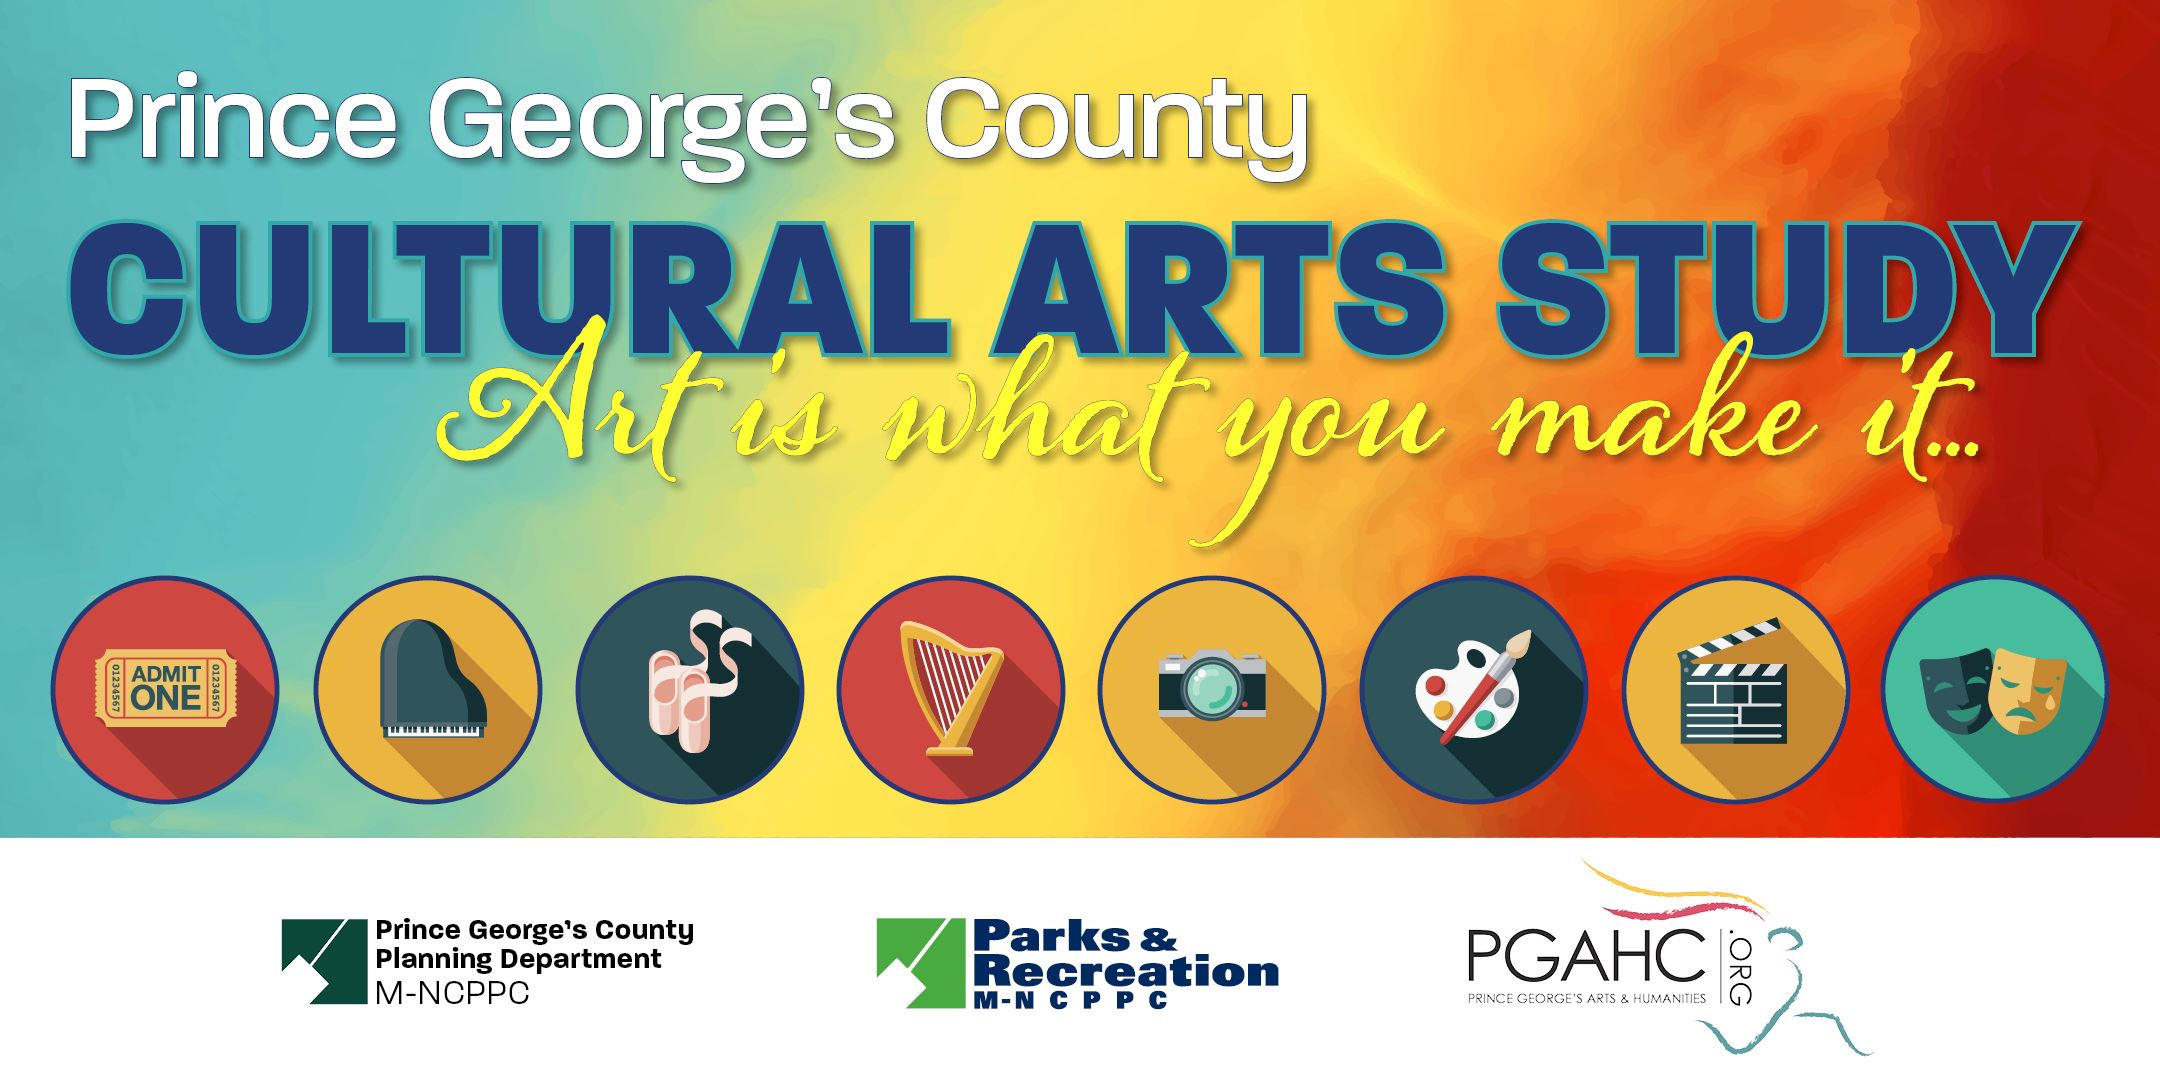 PRINCE GEORGE'S COUNTY CULTURAL ARTS STUDY